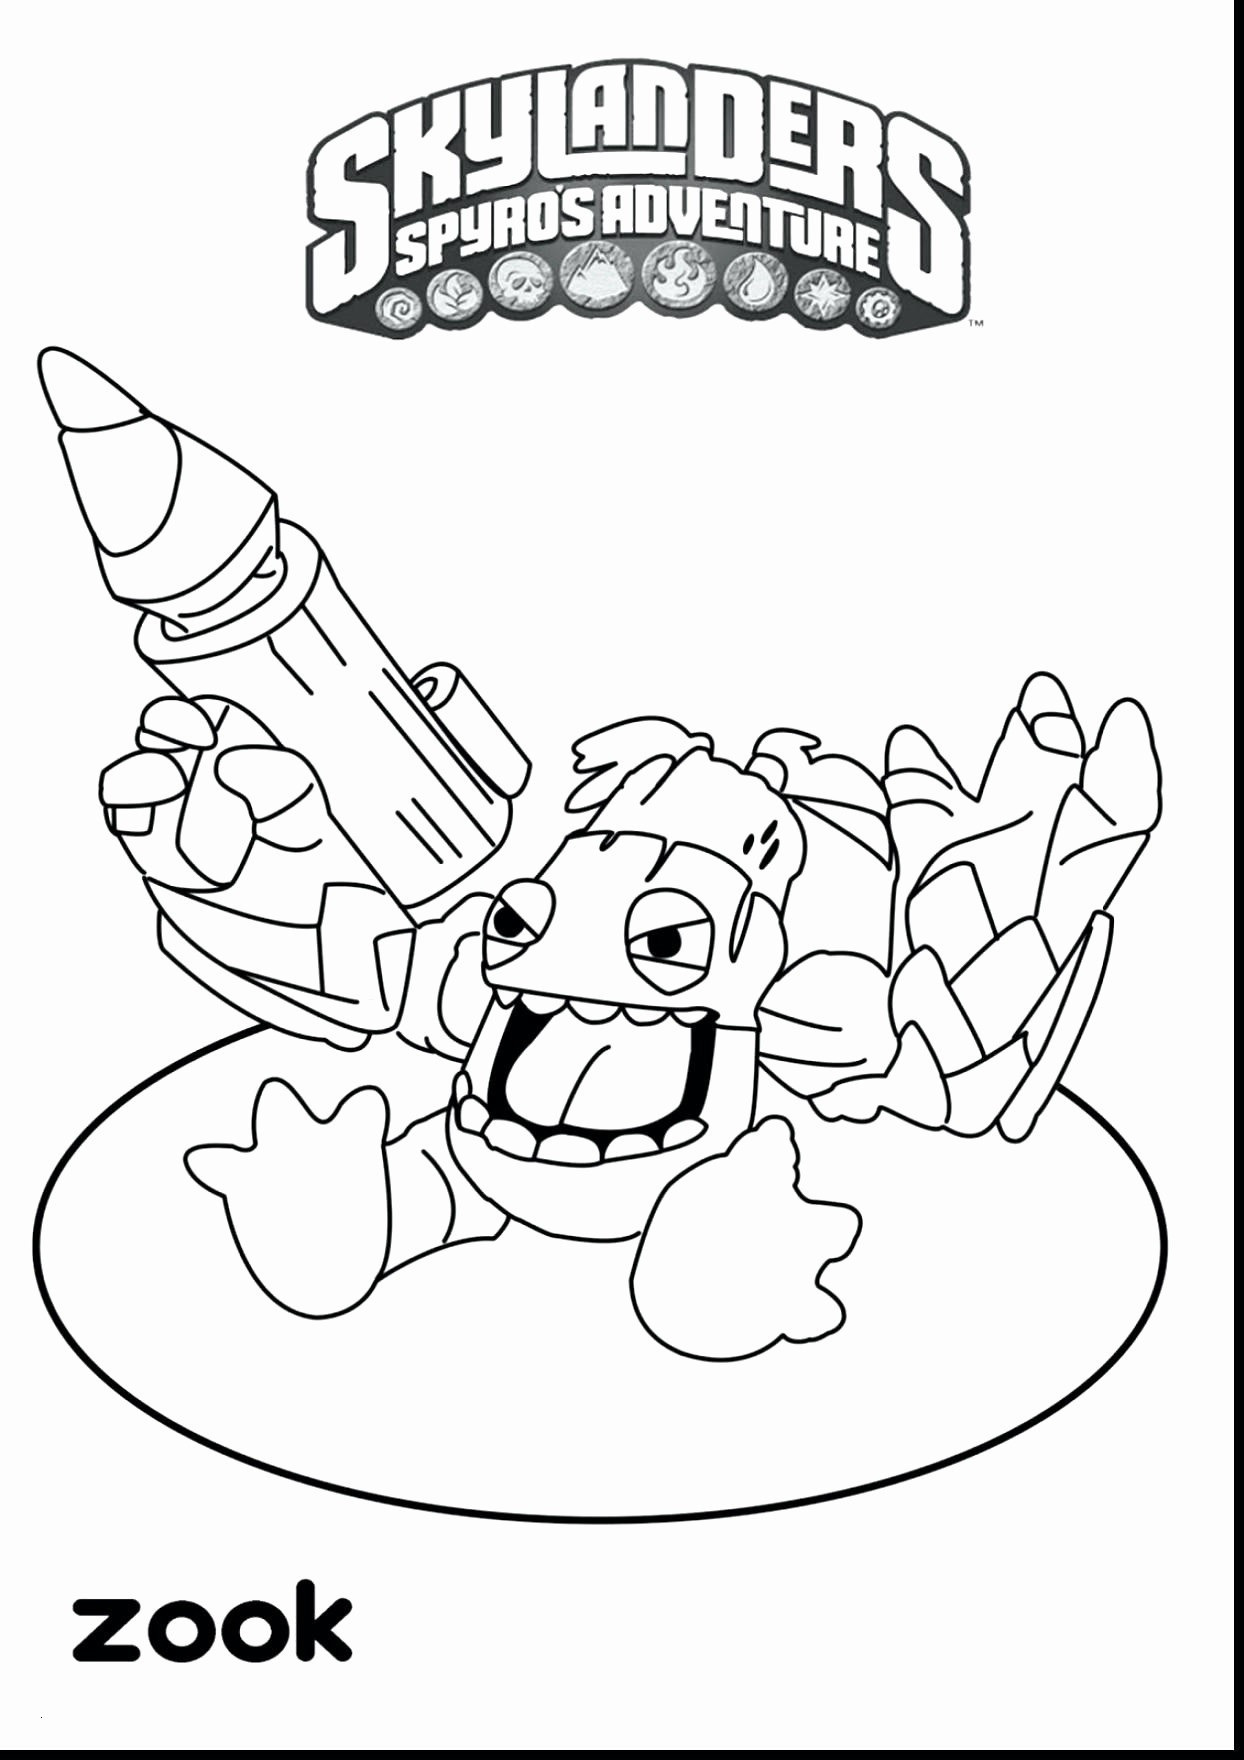 Kung Fu Panda Ausmalbilder Frisch My Singing Monsters Coloring Pages Unique Image 32 Ausmalbilder Kung Sammlung